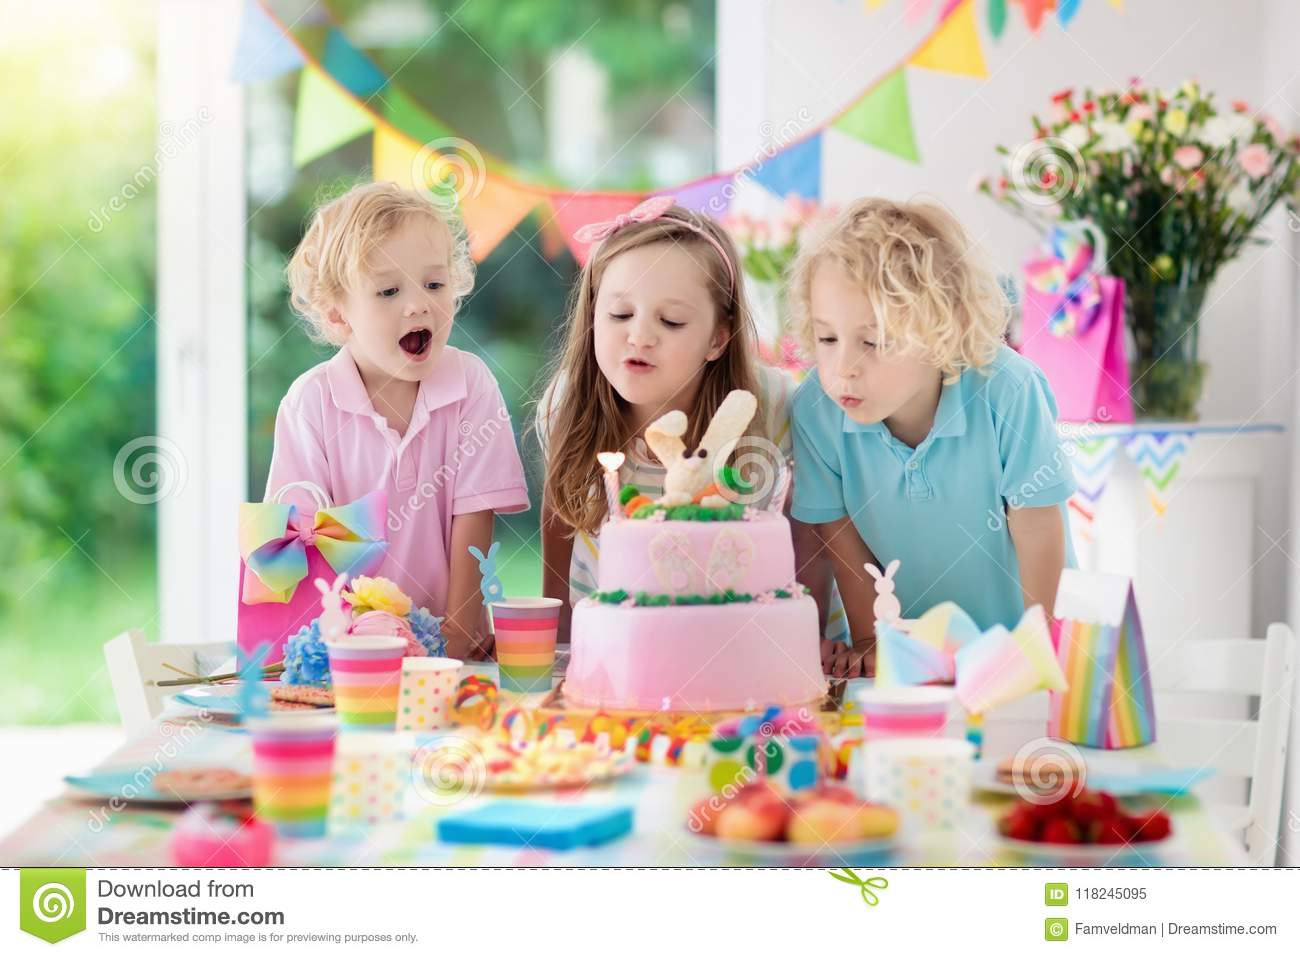 Kids Birthday Party Children Blow Cake Candles Stock Image Image Of Child Kids 118245095